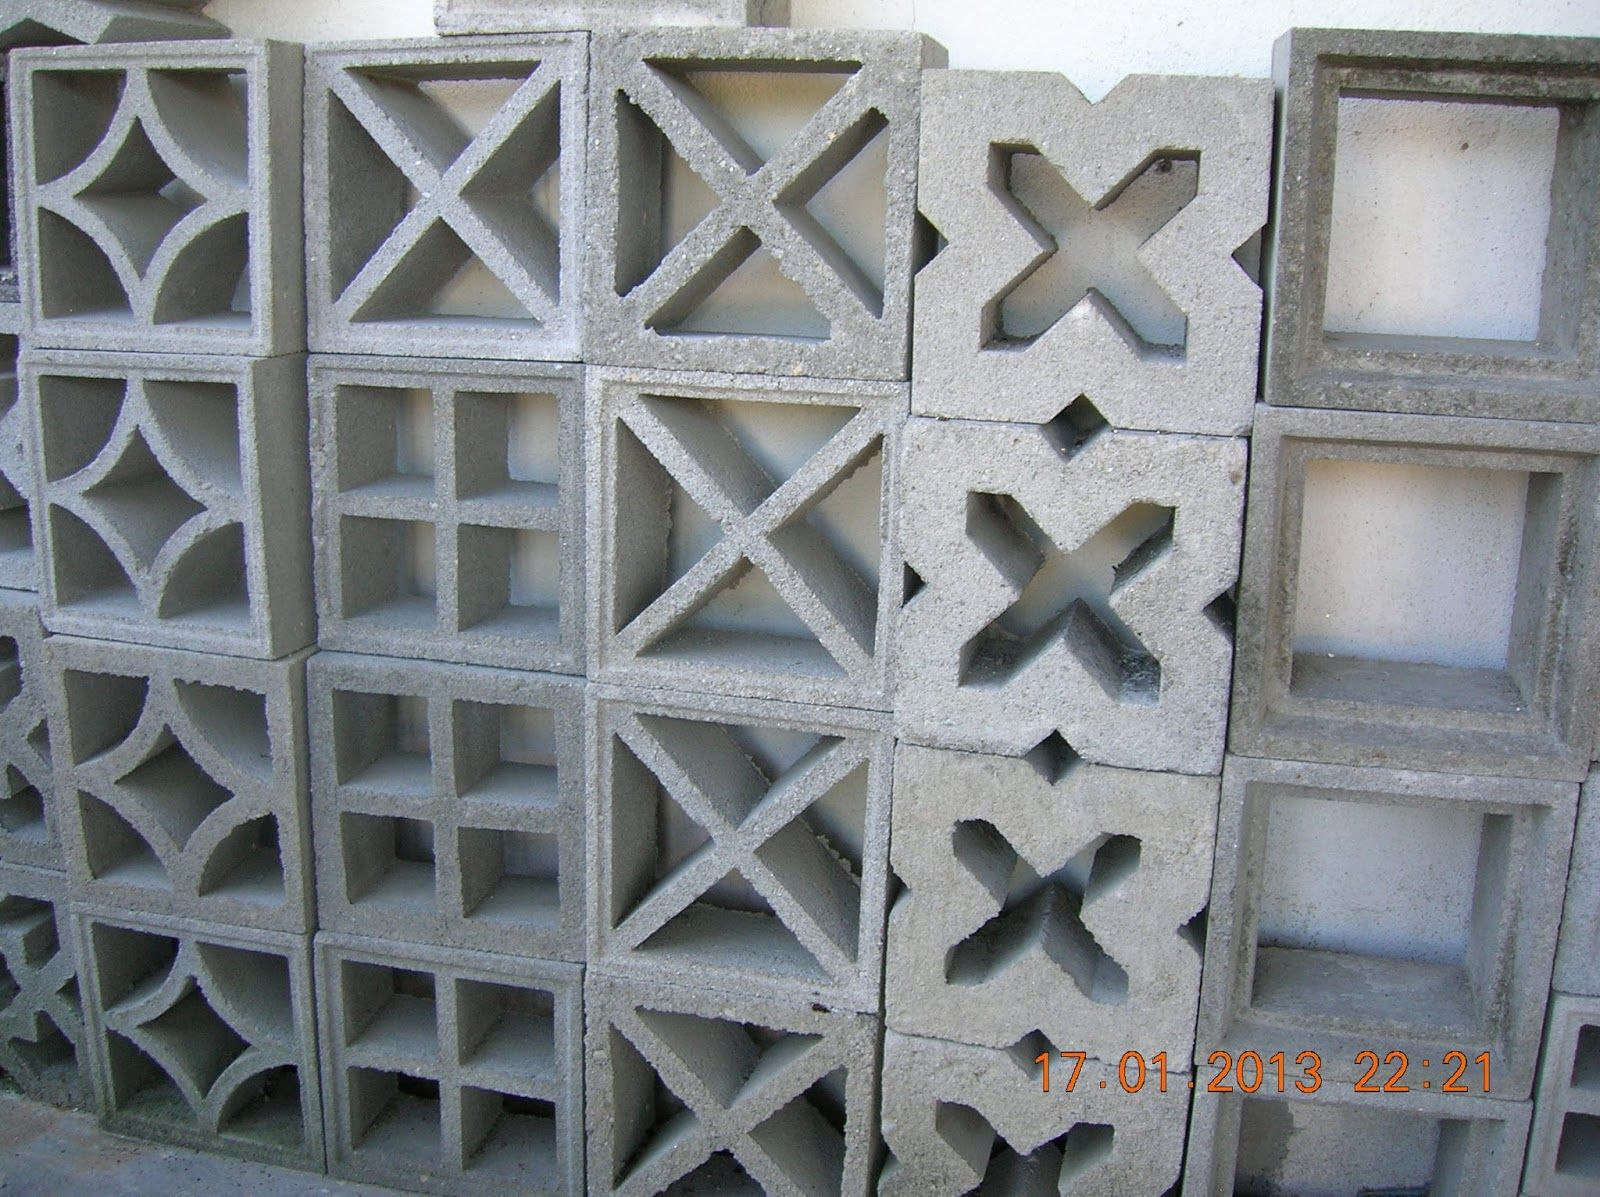 Ventilation Block Supplier Malaysia C Amp G United Trading